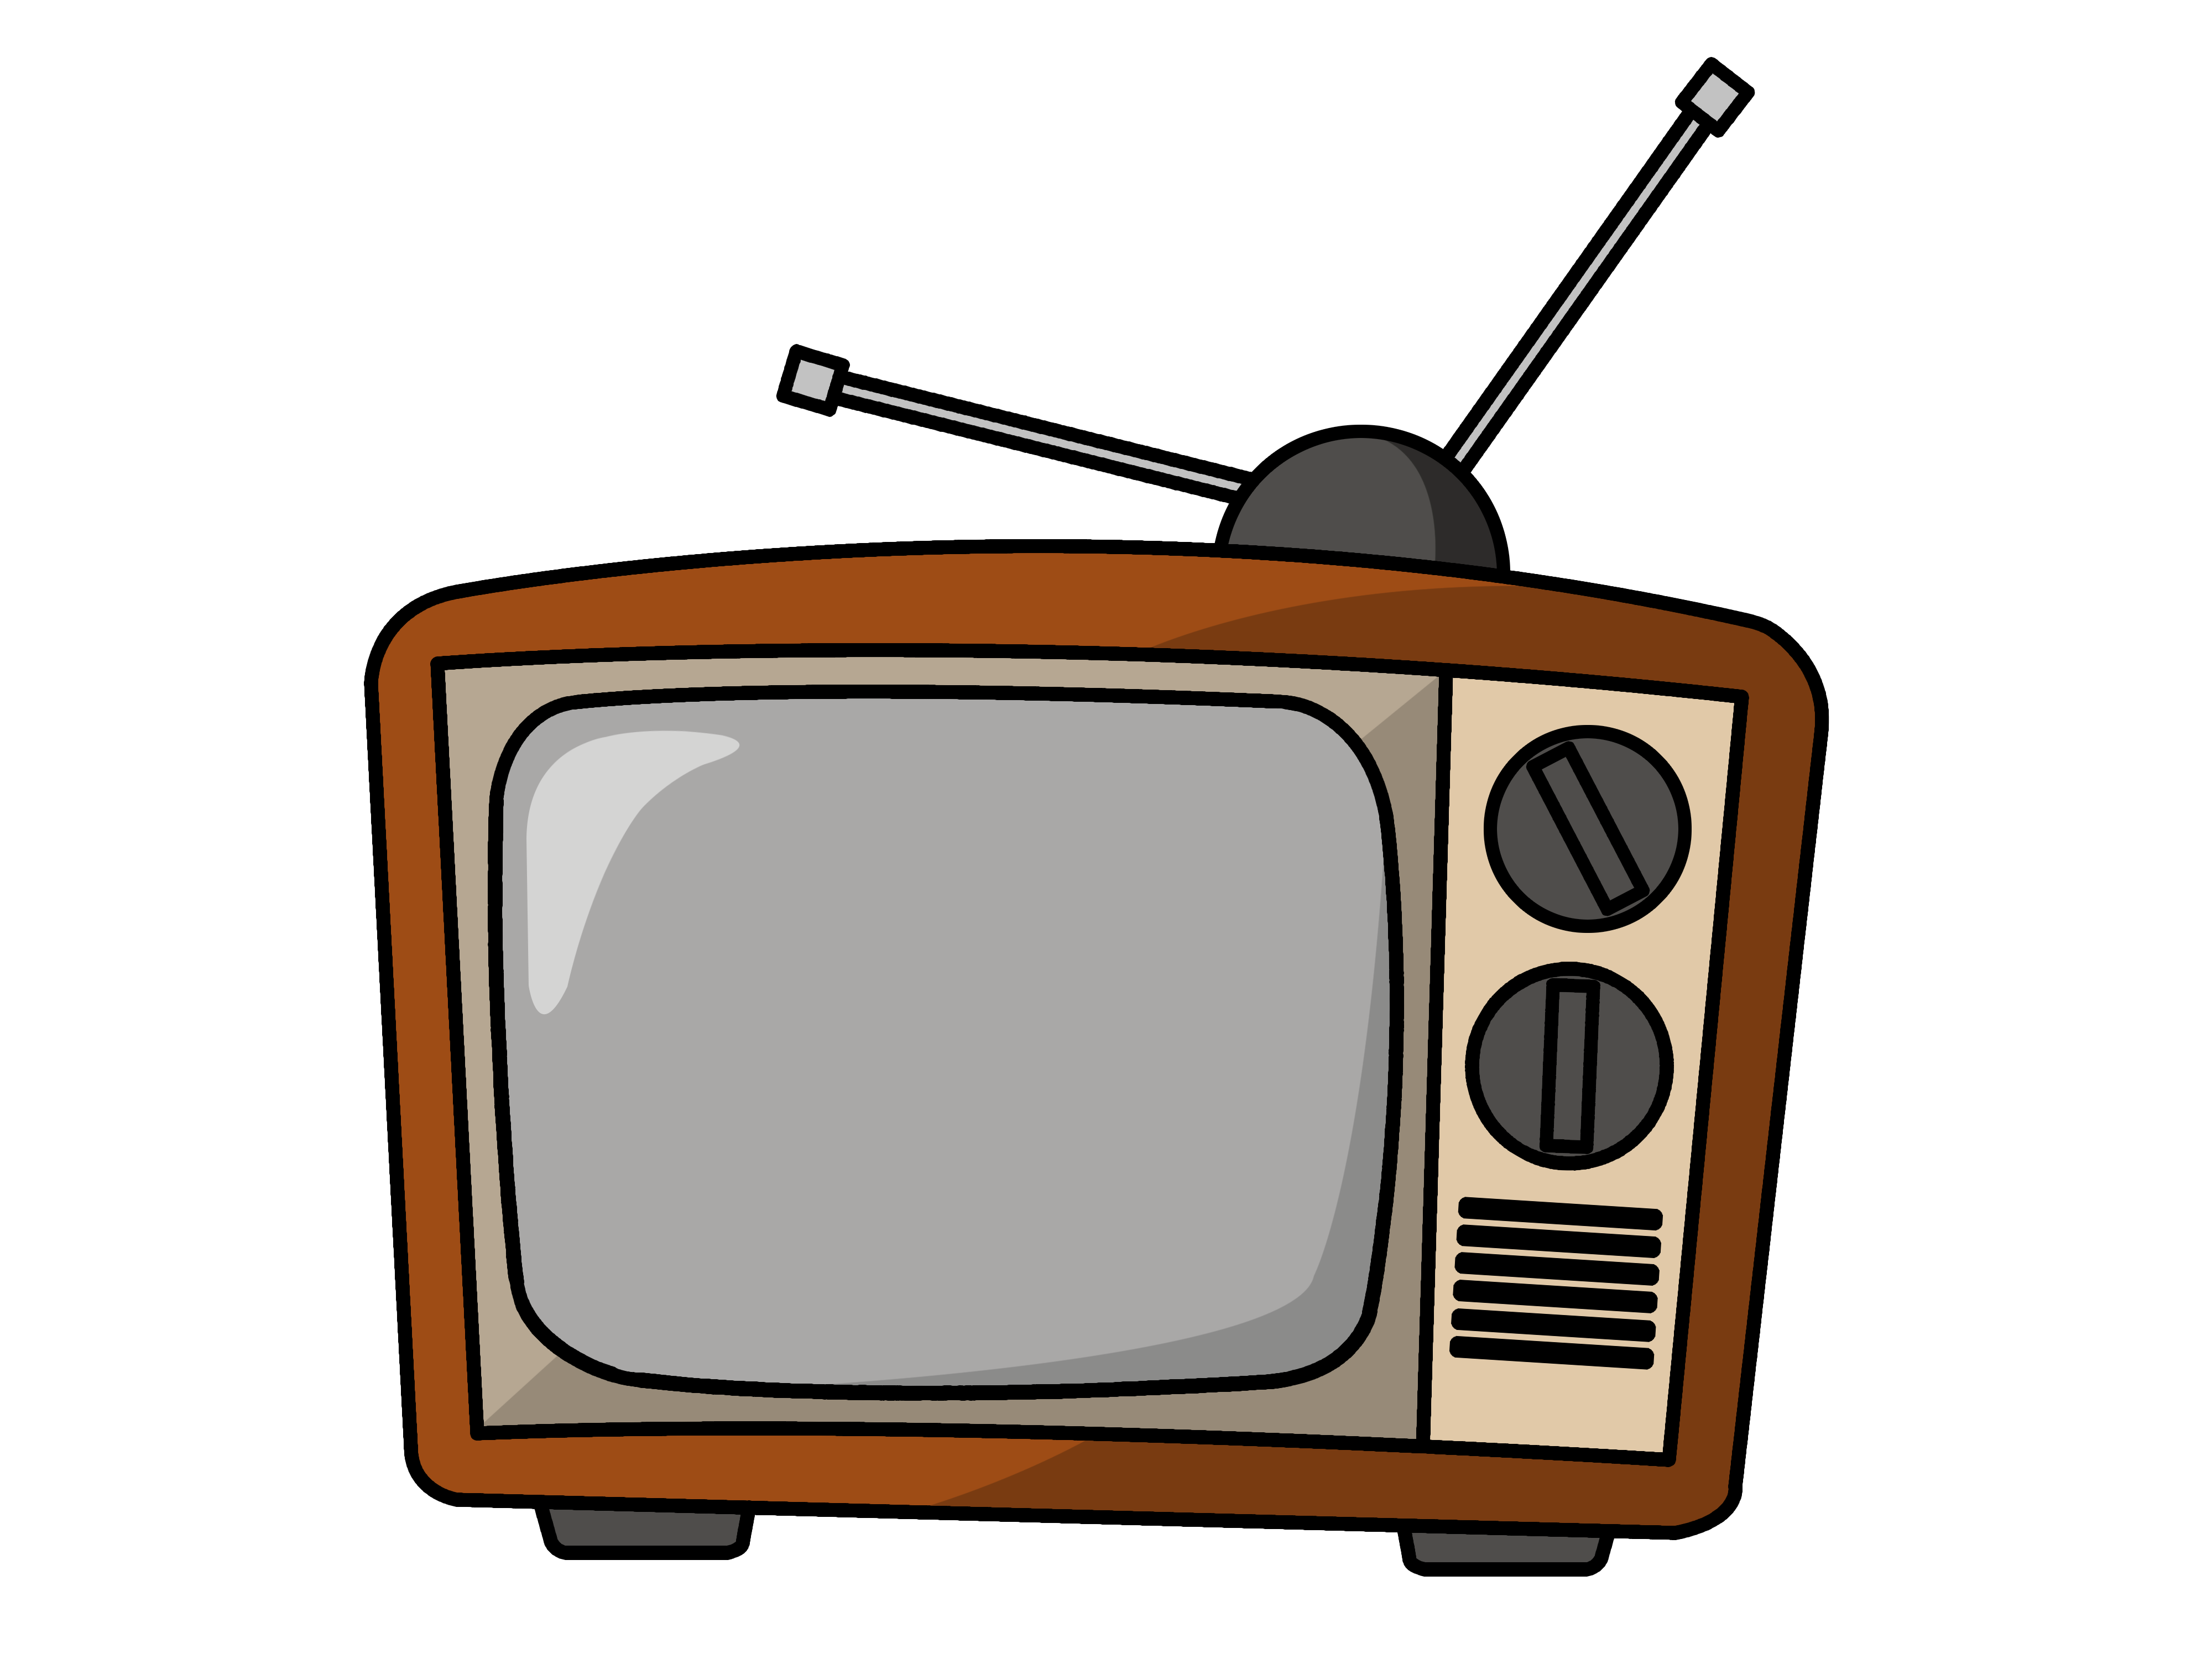 Free Television Pictures, Download Free Clip Art, Free Clip.